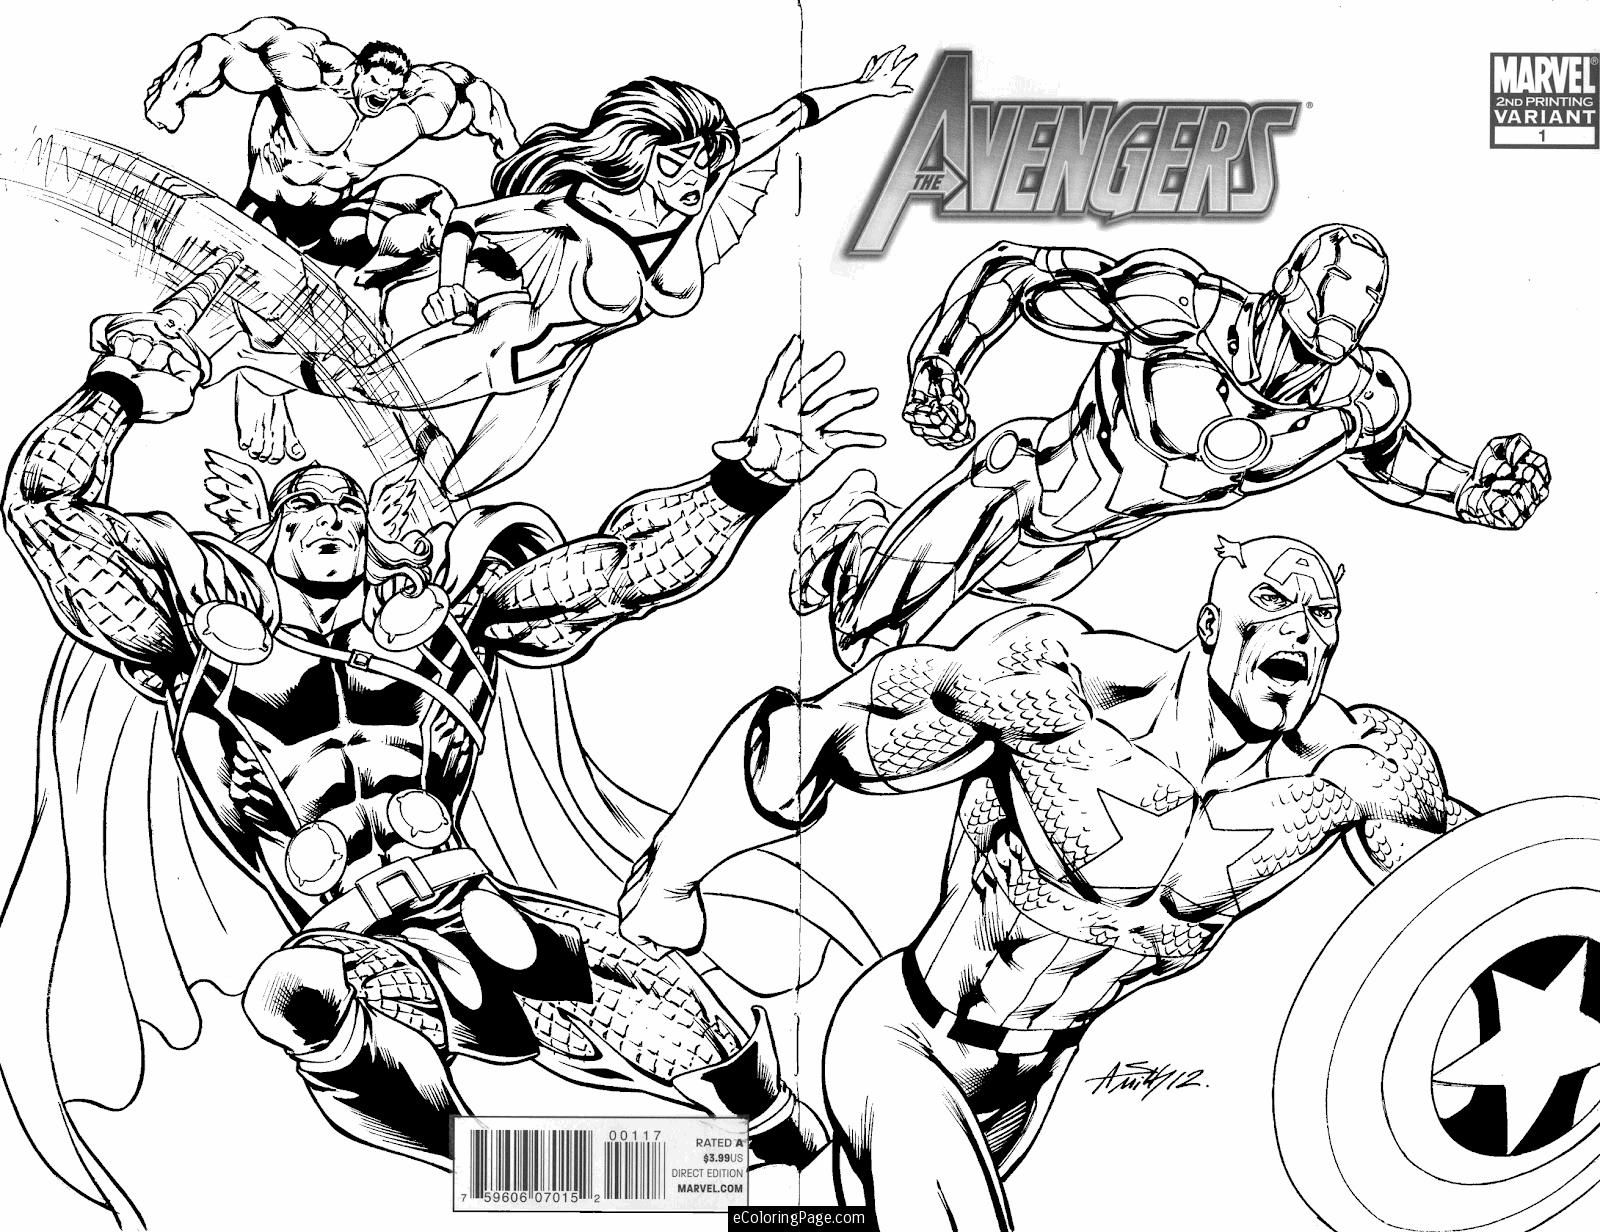 The coloring book project 2nd edition - Marvel Superhero Avengers In Action Coloring Page For Kids Printable